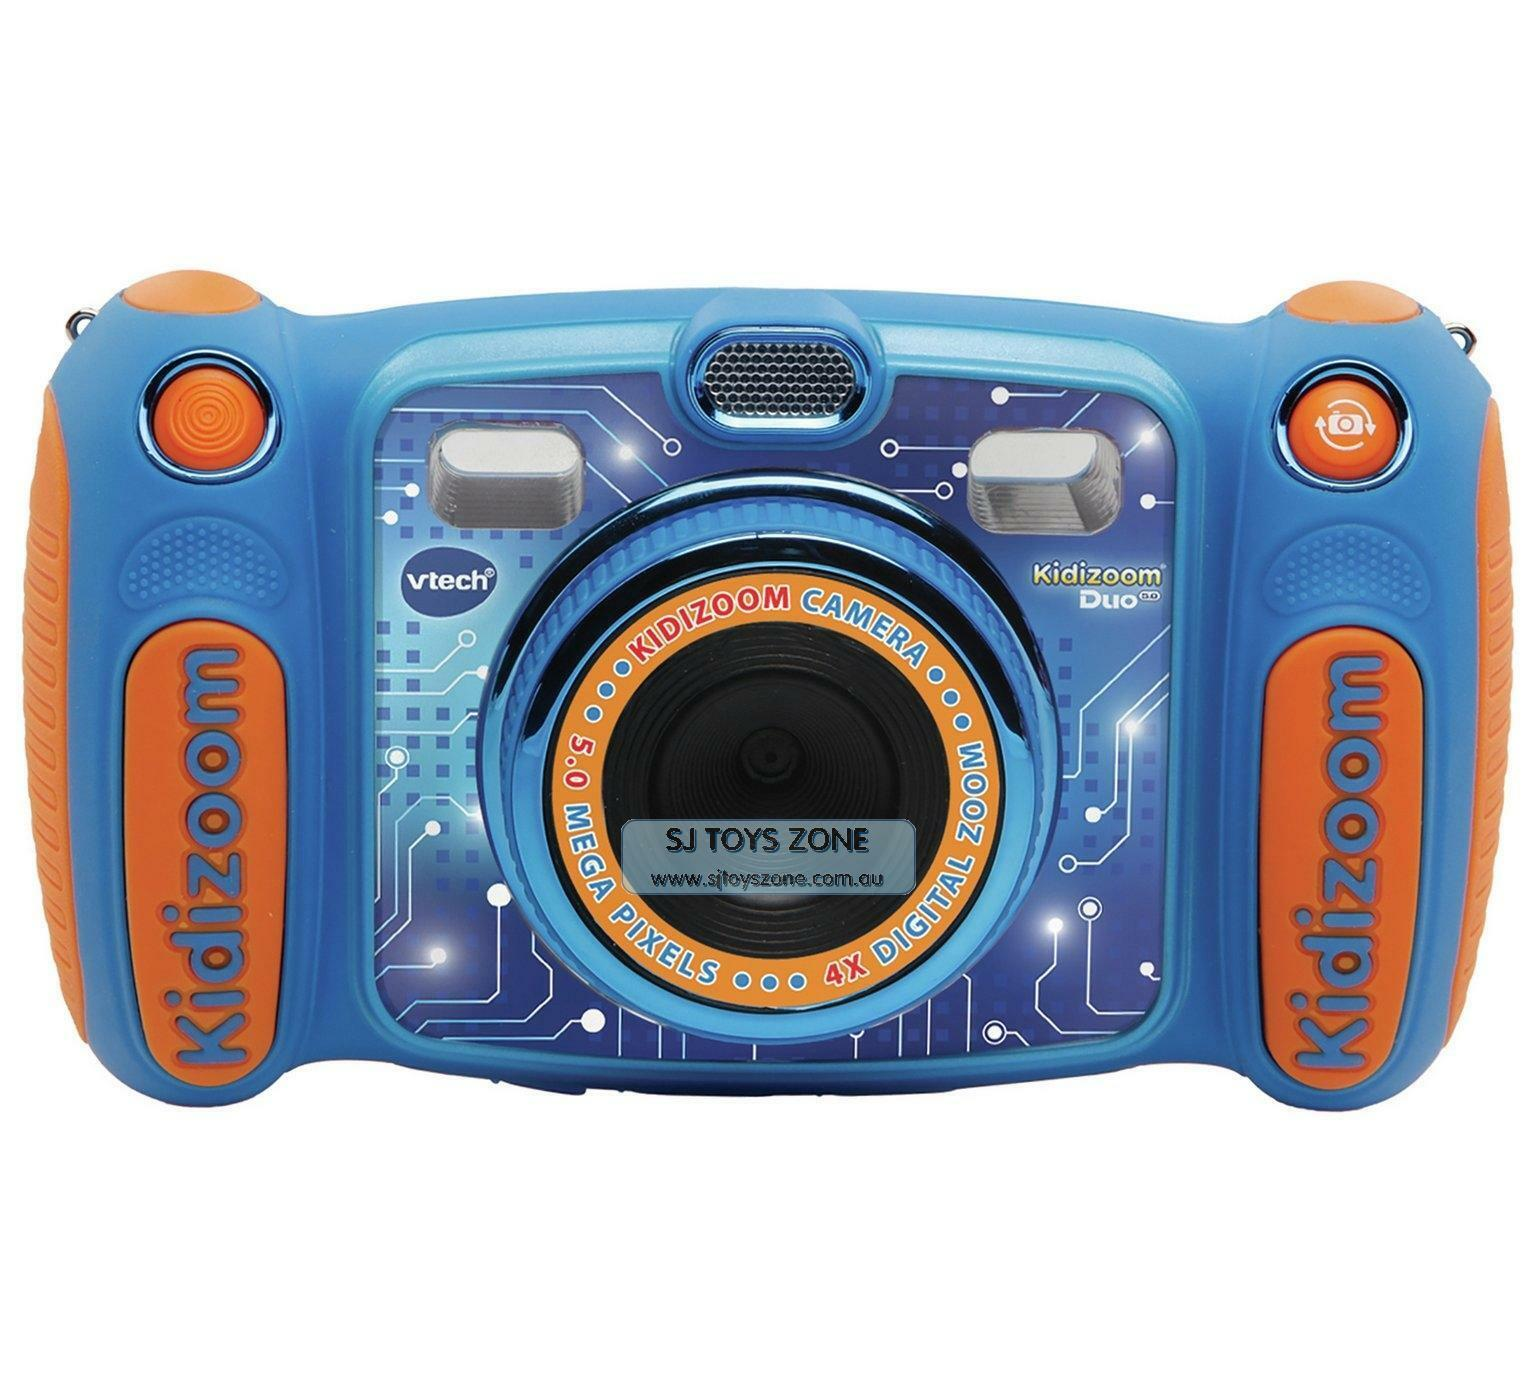 Kidizoom Duo Digital 2.4 Inch Coloured LCD Screen Camera (5.0)  for Kids - bluee